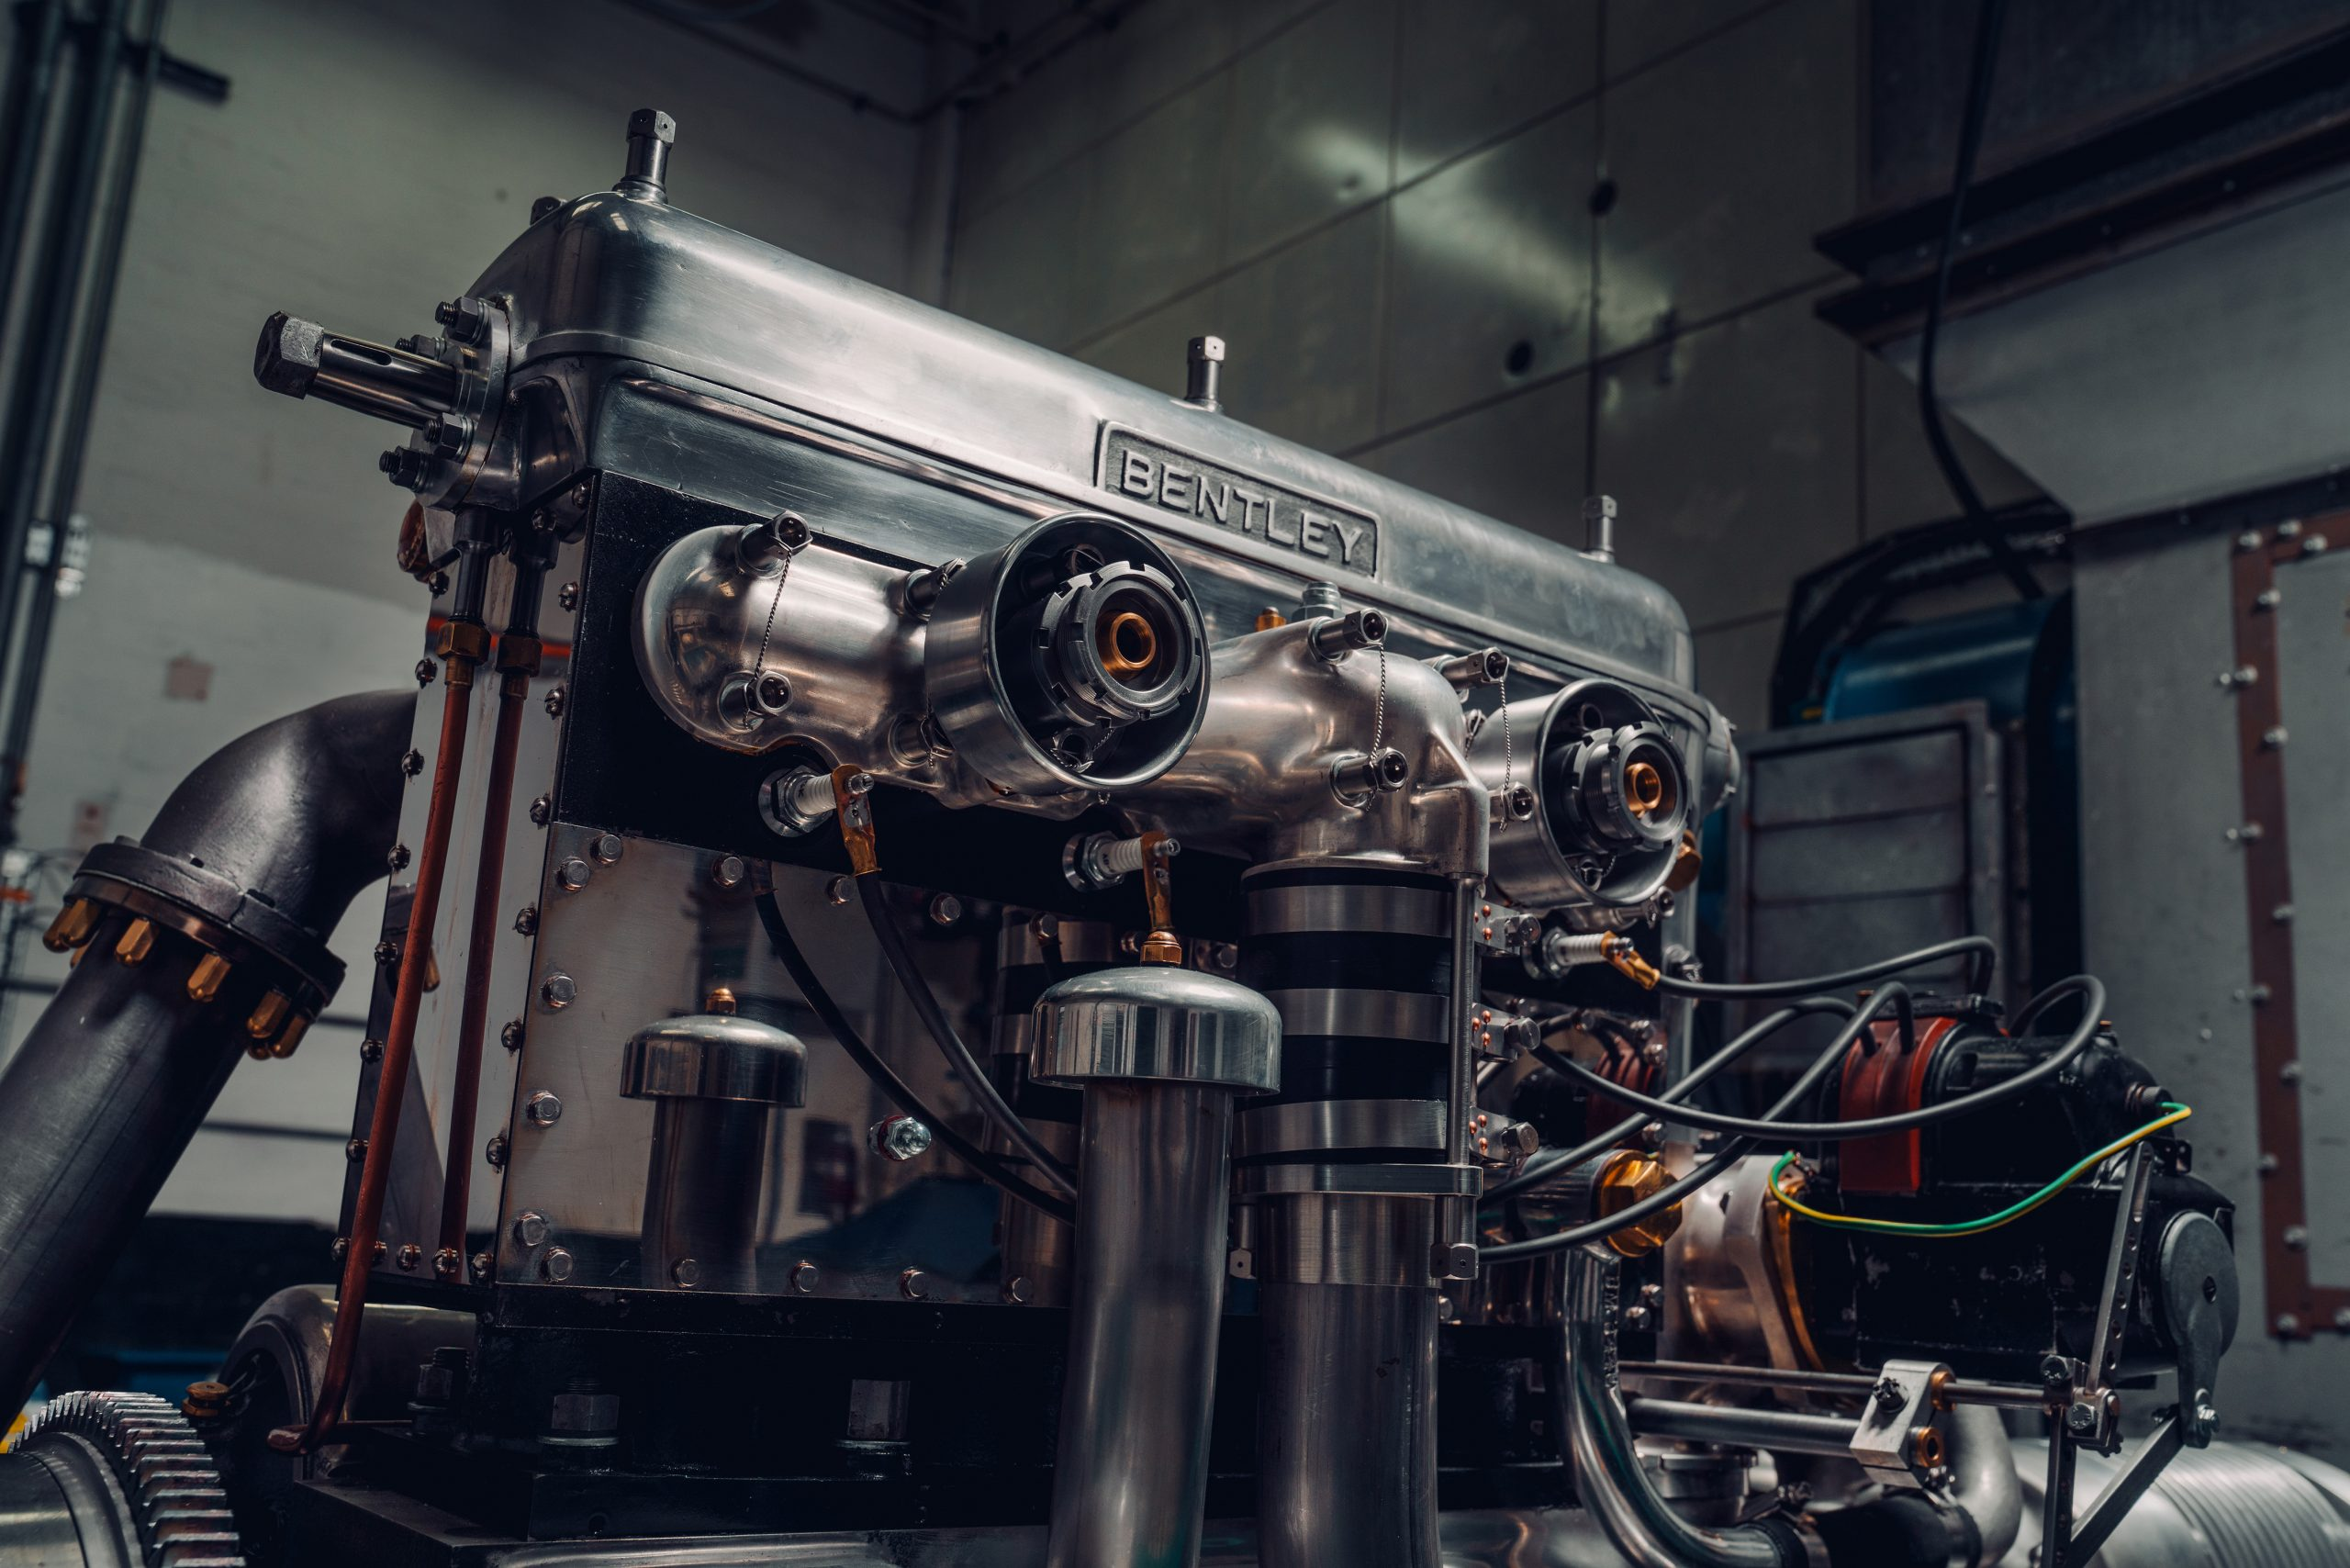 Bentley fires up first new Blower engine – on a Spitfire test rig